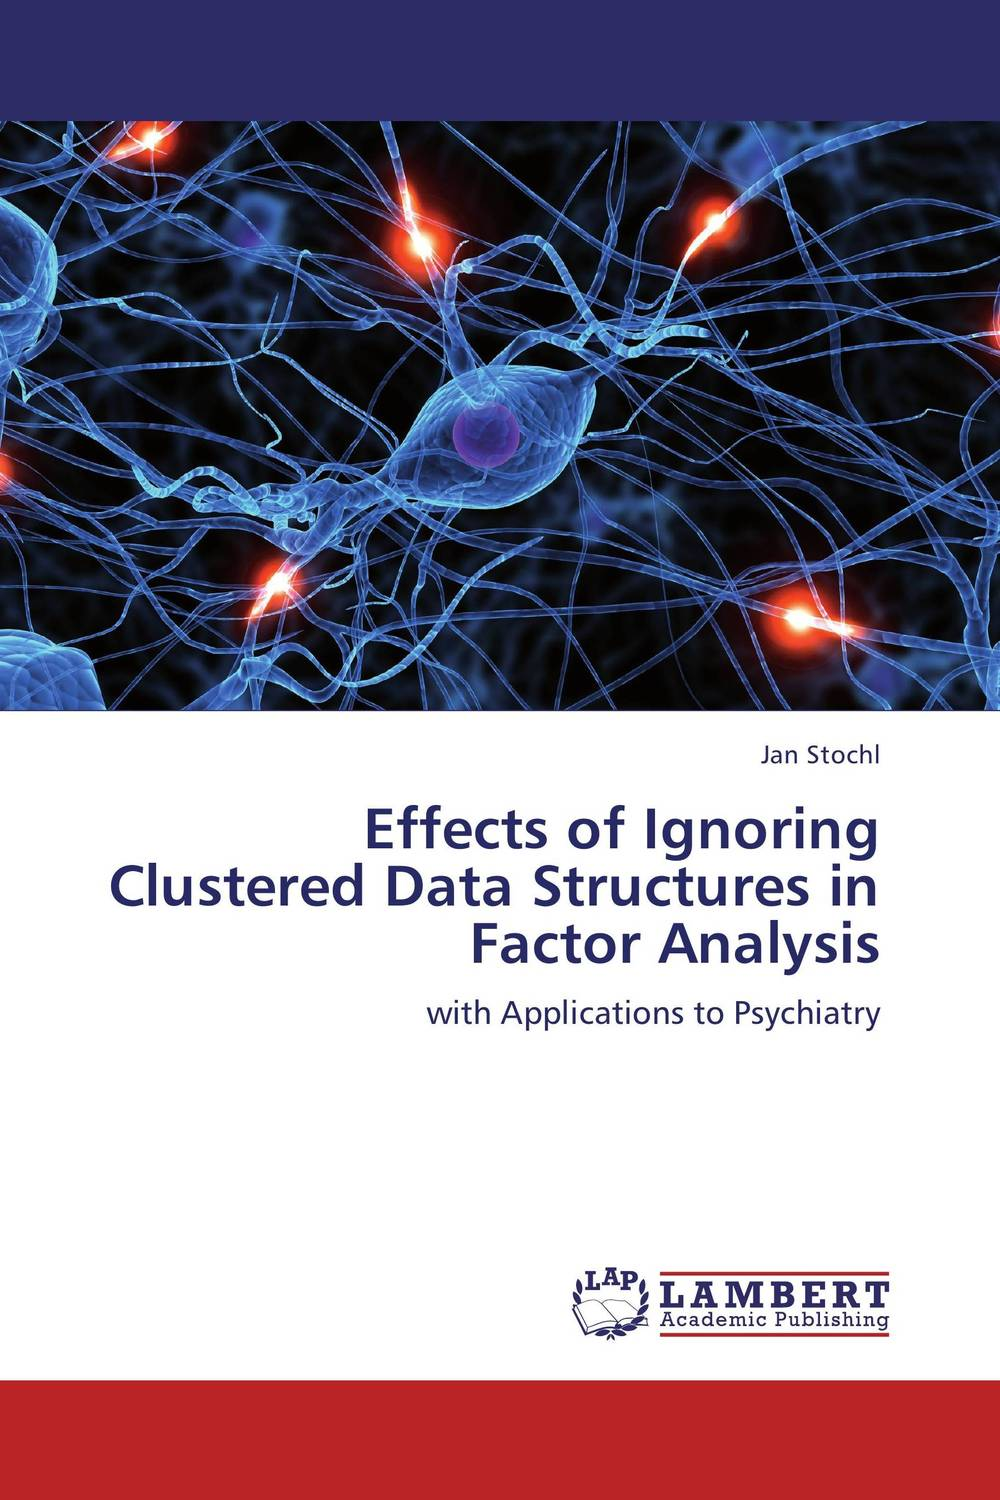 Effects of Ignoring Clustered Data Structures in Factor Analysis